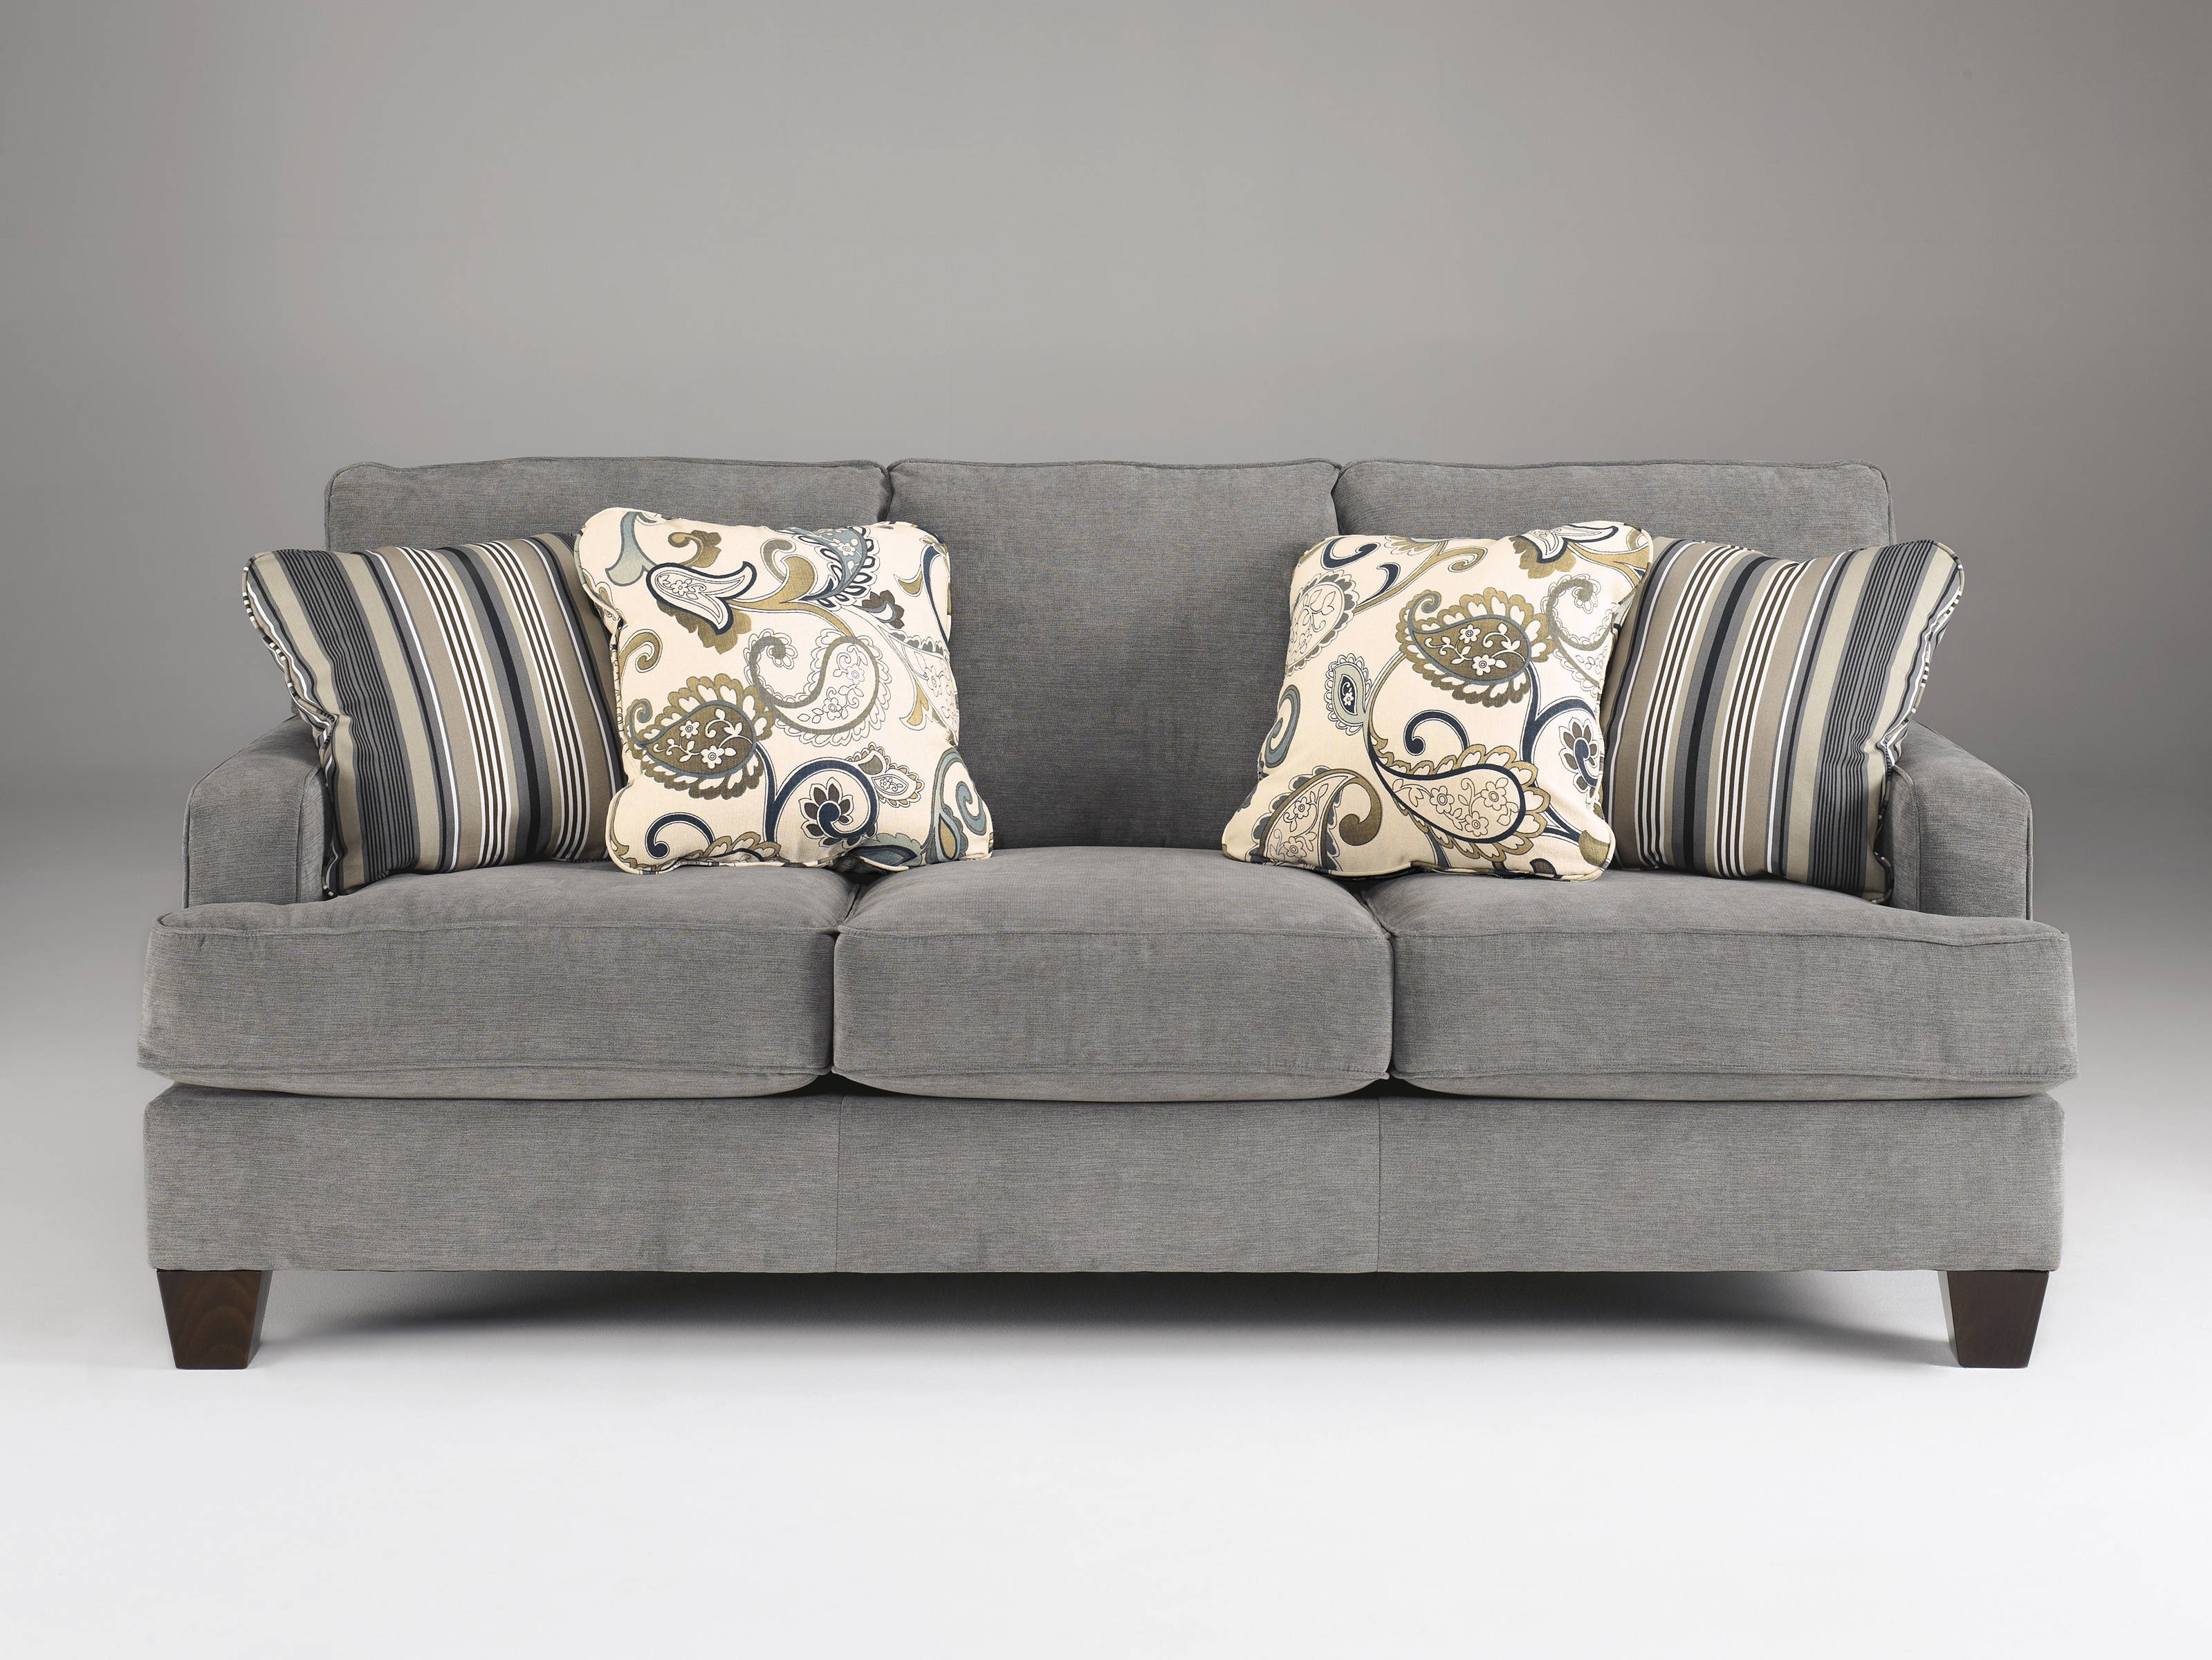 Yvette Casual Steel Gray Fabric Cushion Back Sofa Living Rooms With Regard To Ashley Furniture Gray Sofa (Image 15 of 15)